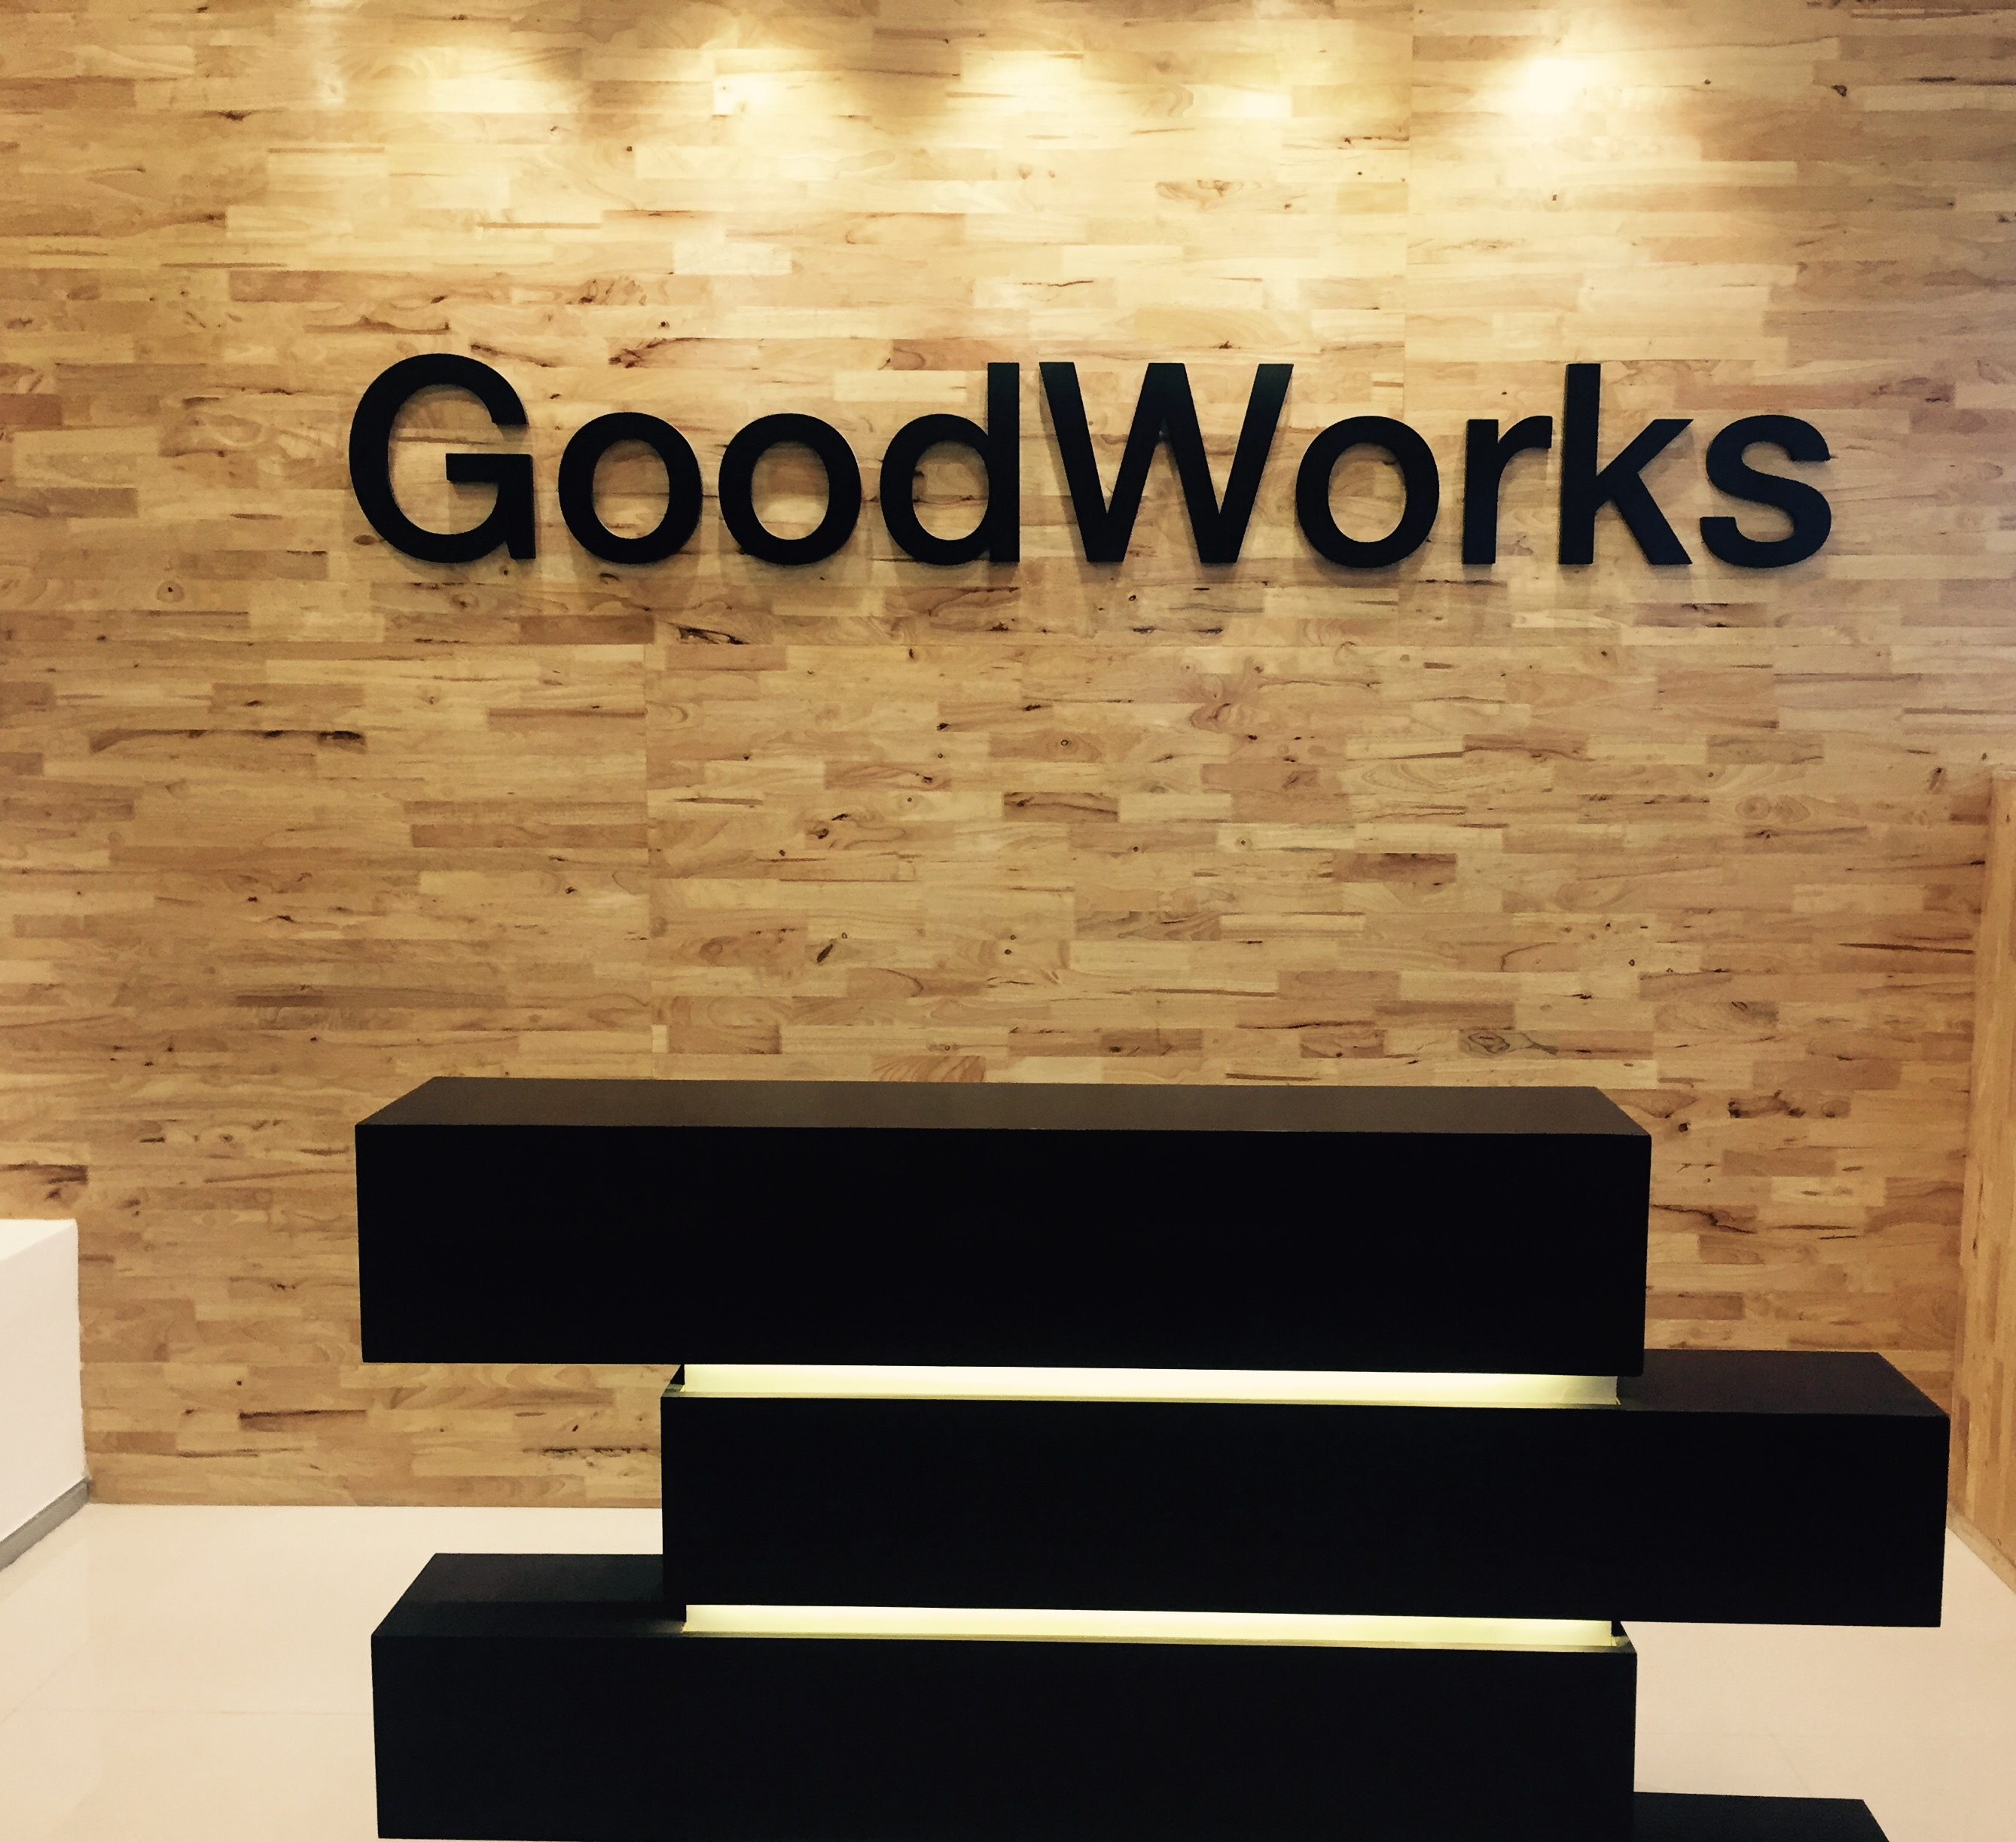 GoodWorks coworking space in bangalore